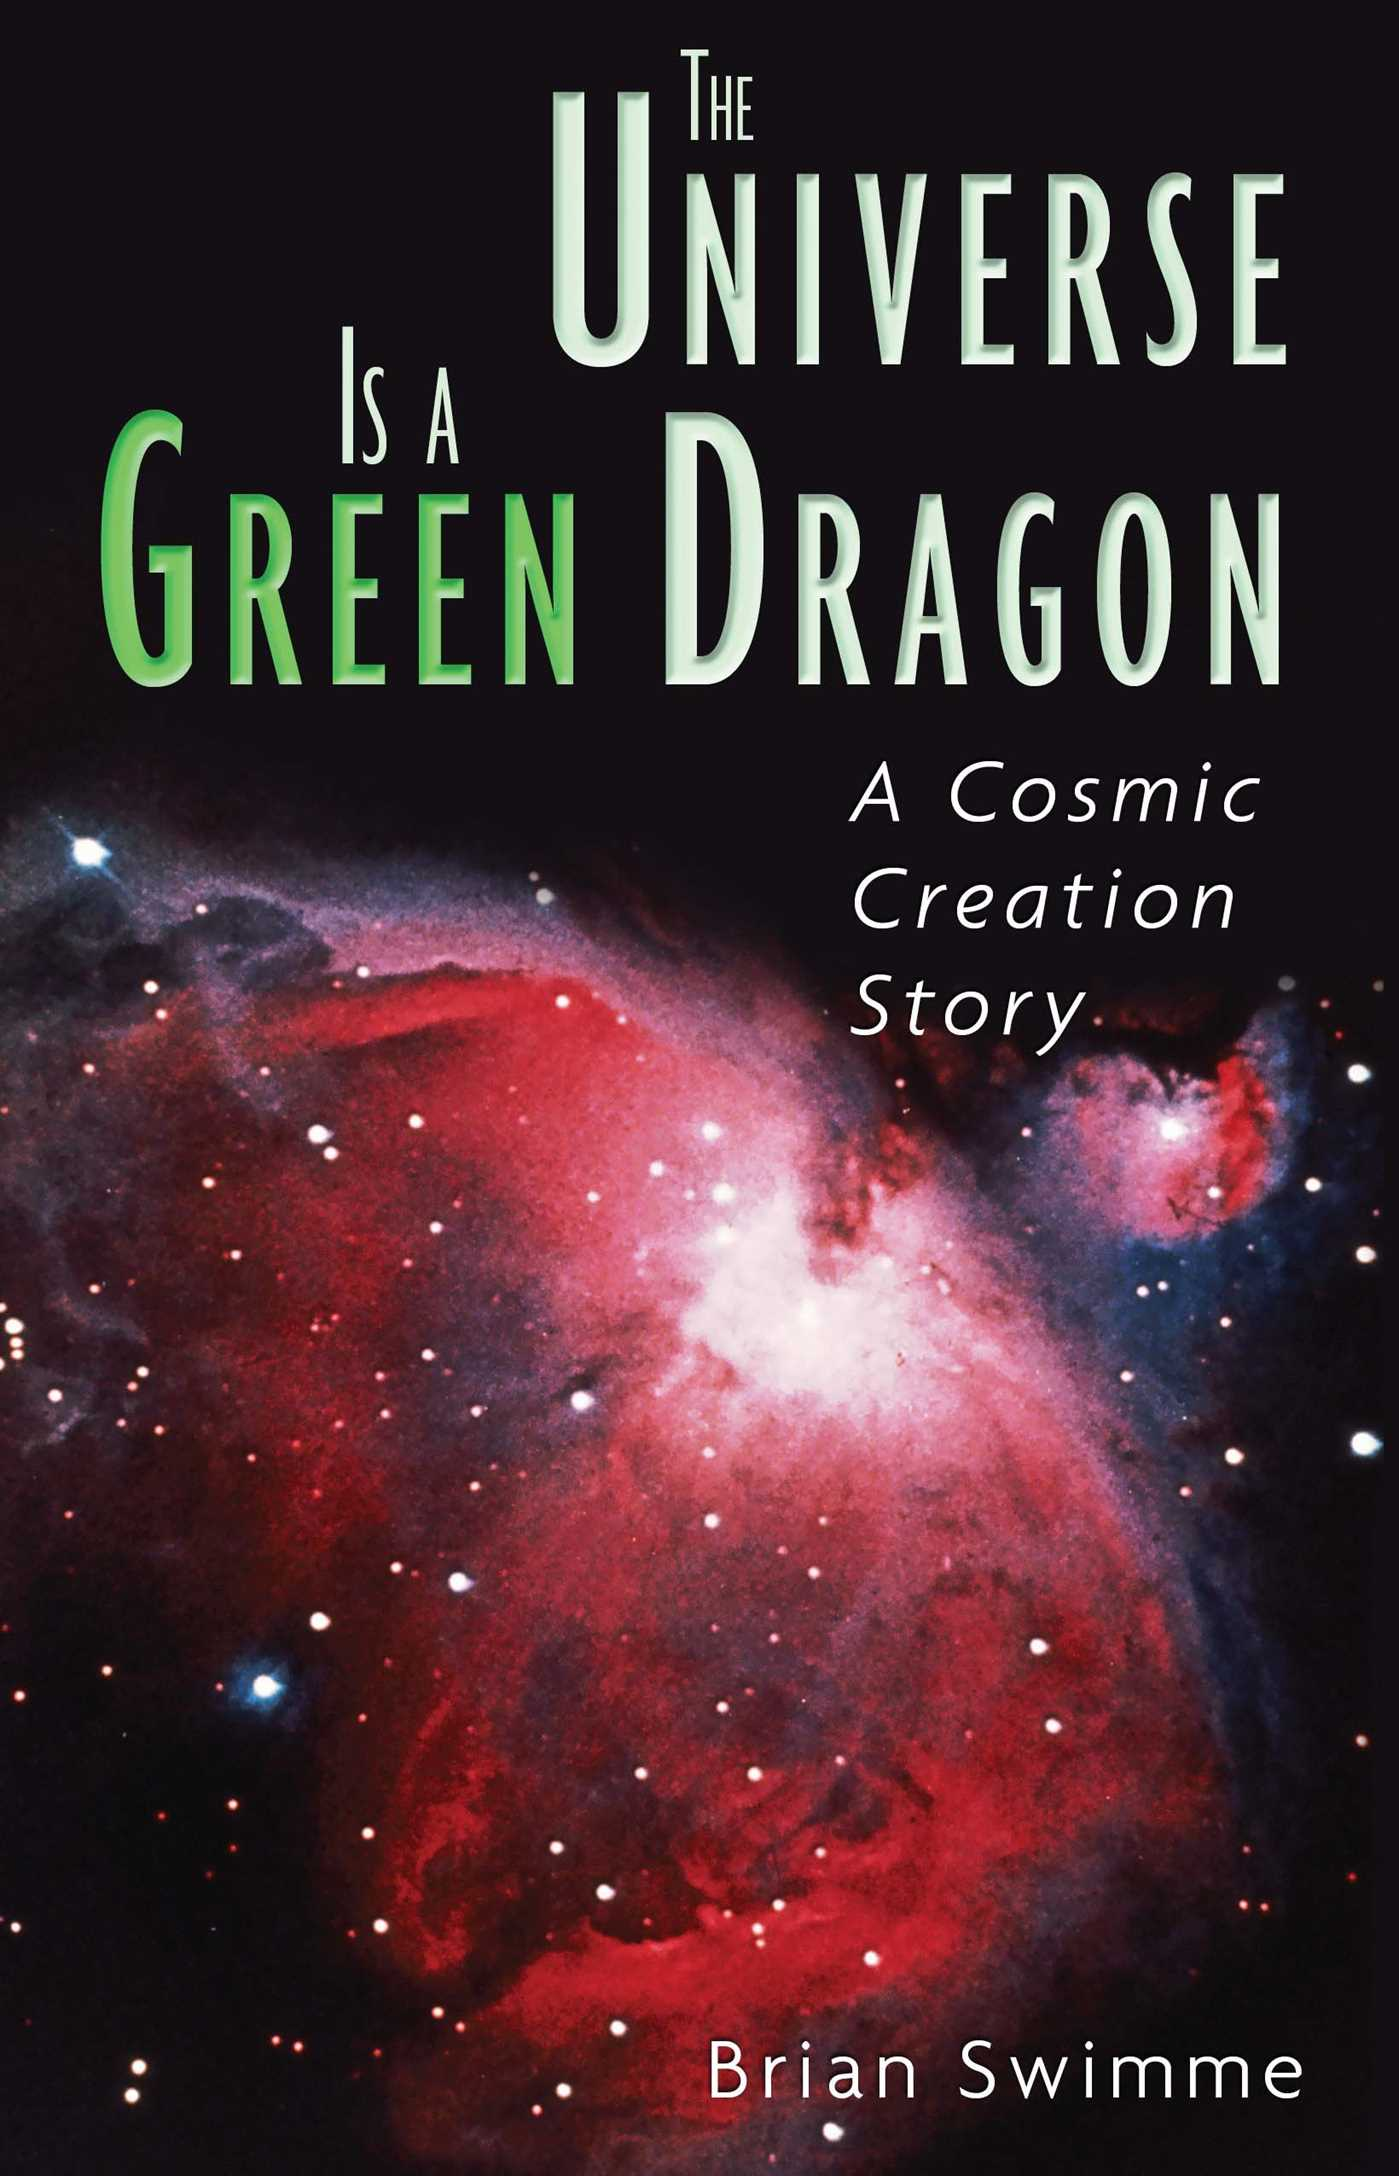 The universe is a green dragon 9780939680146 hr